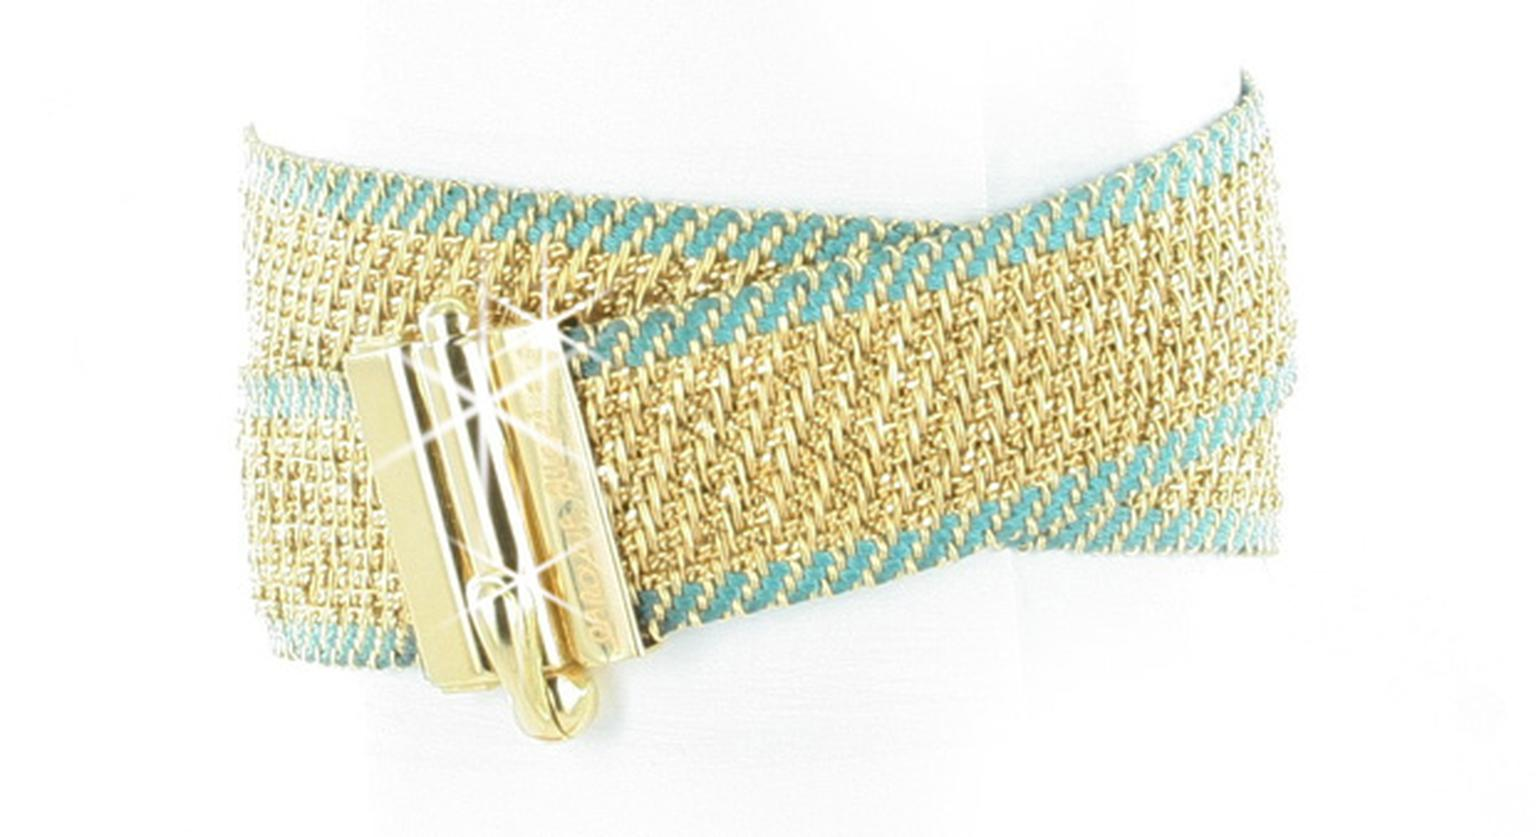 Caroline Bucci woven gold and silk bracelet